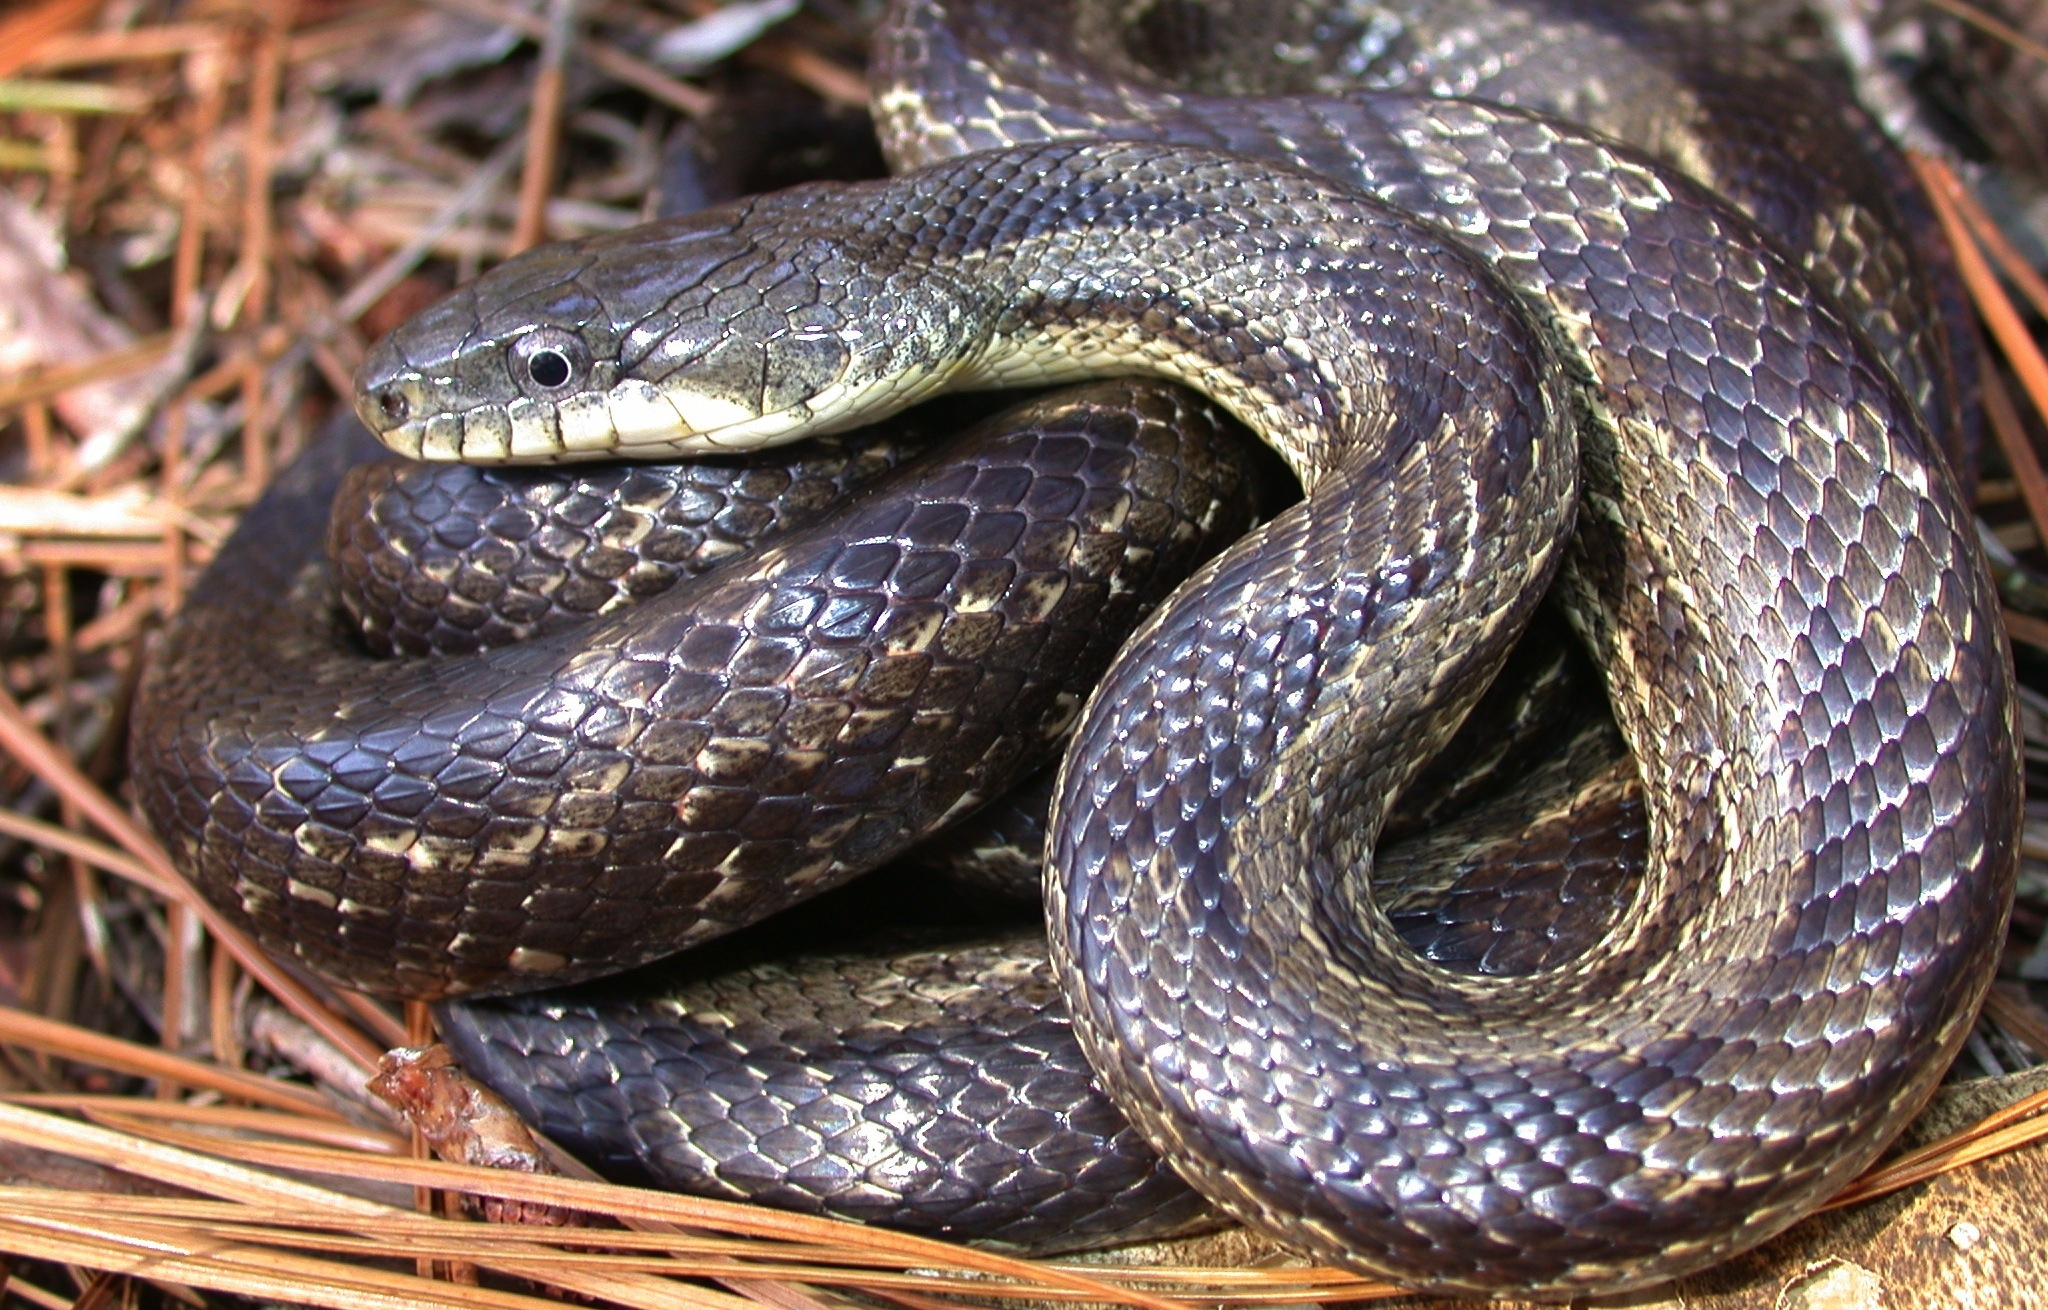 """Integrade phase,"" a cross between a black and yellow rat snake Photo by _____"